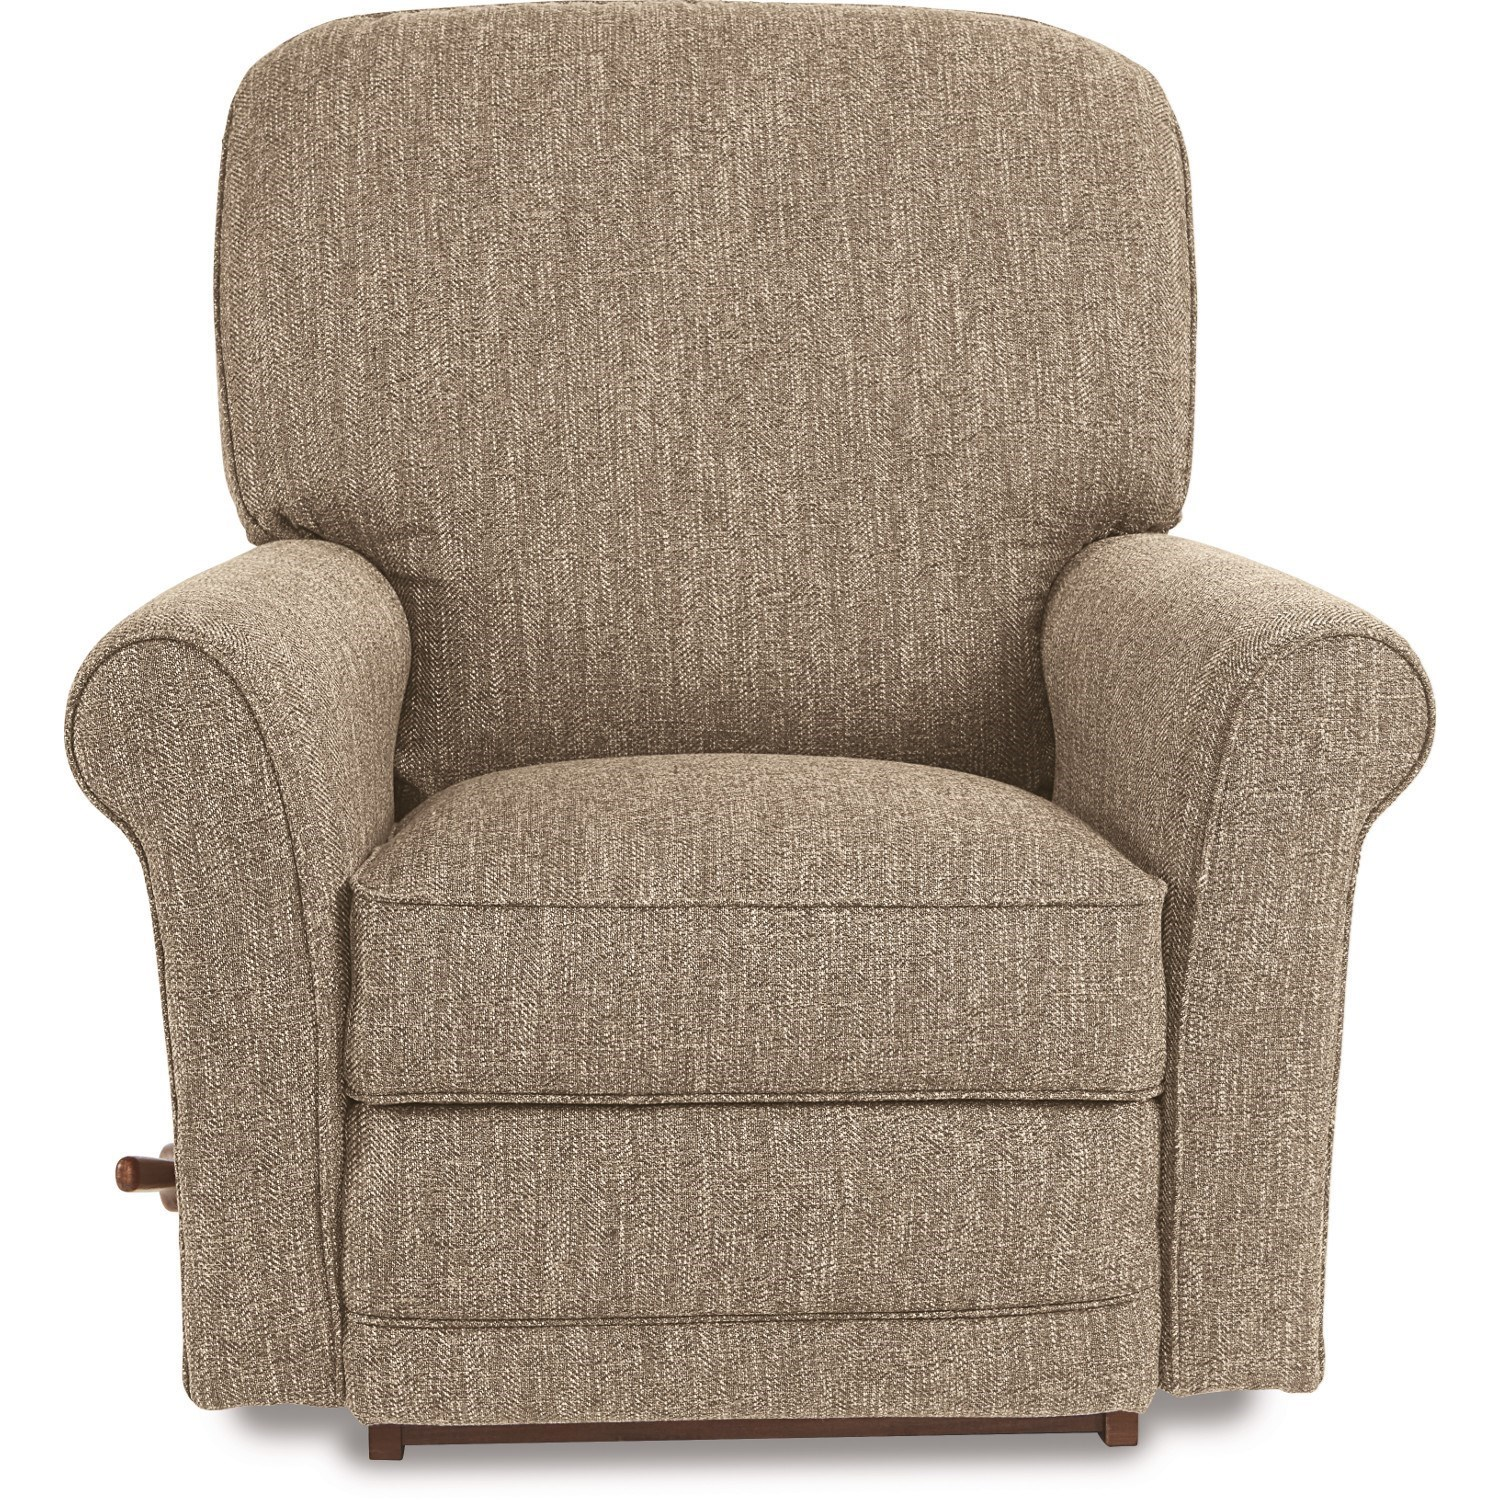 Addison RECLINA-ROCKER® Recliner by La-Z-Boy at Home Furnishings Direct